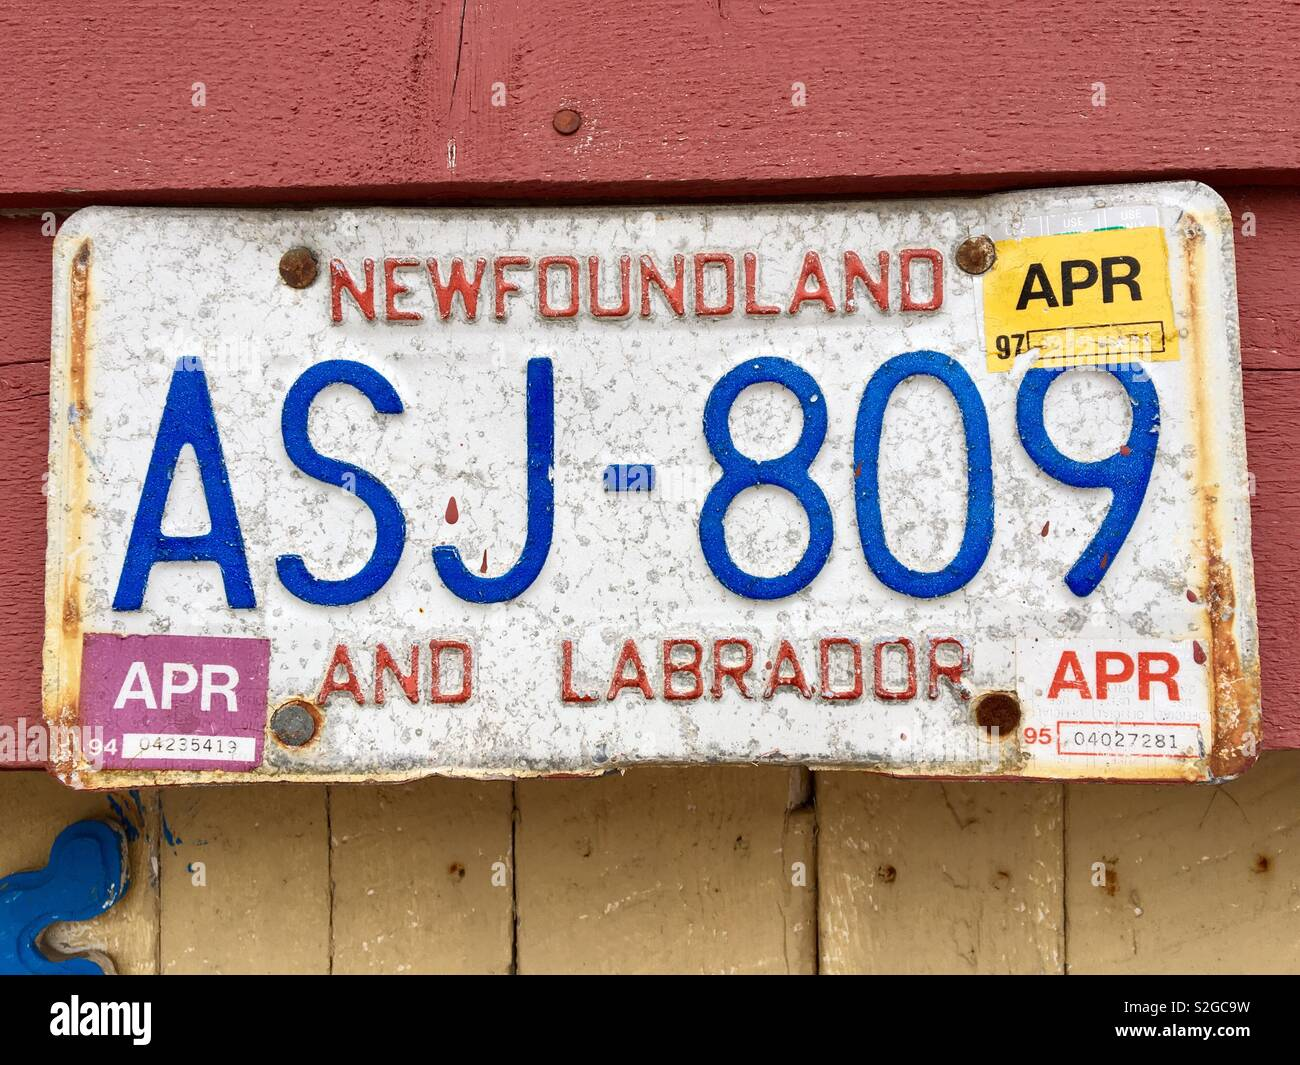 Old Newfoundland and Labrador car number plate - Stock Image